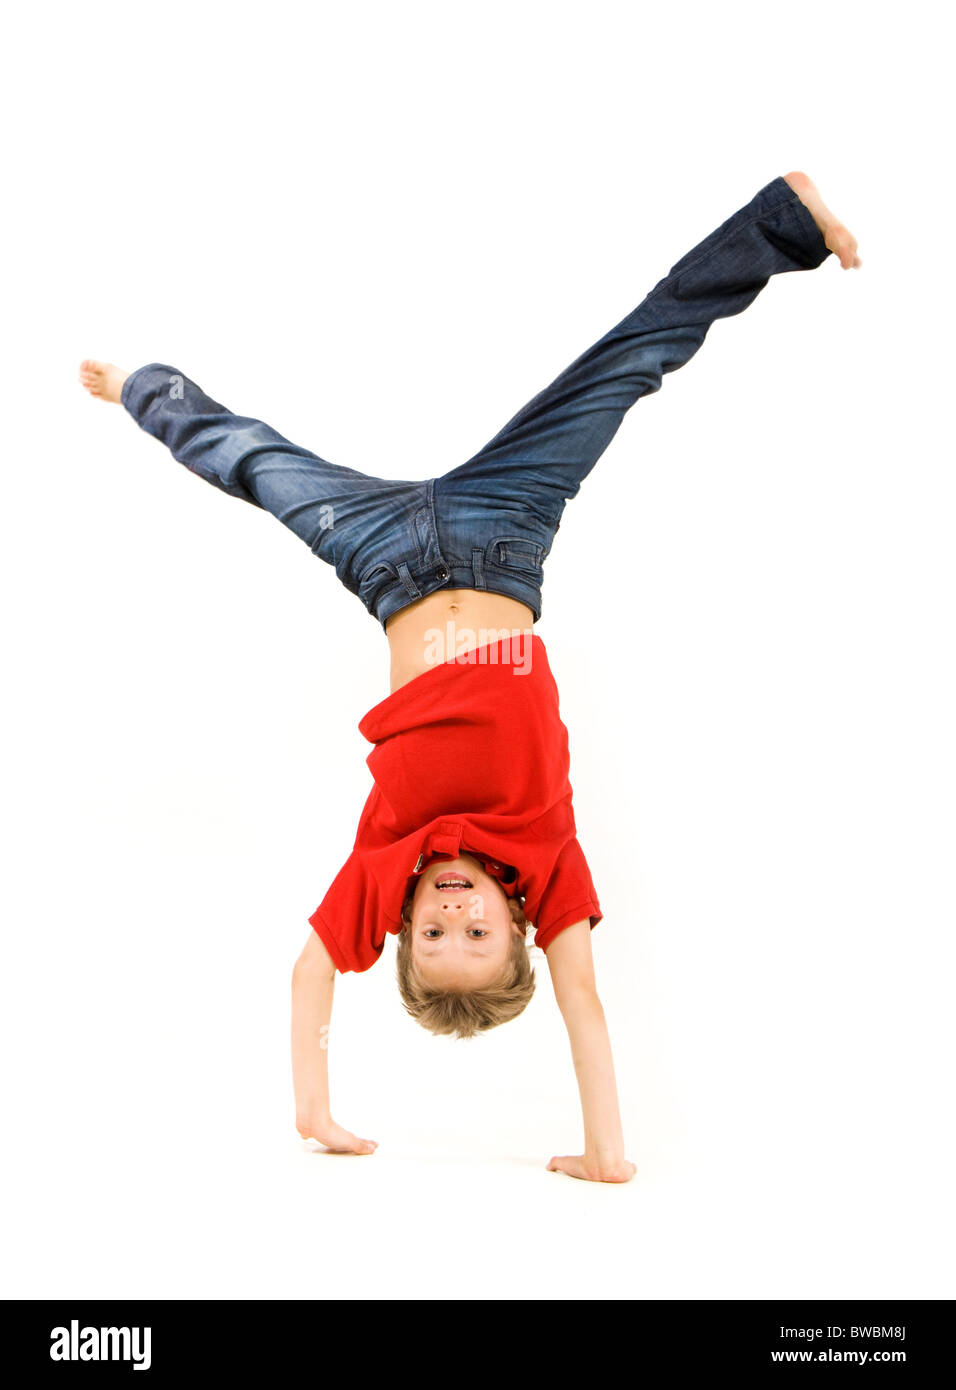 Playful lad standing on his arms with legs pointing upwards over white background - Stock Image